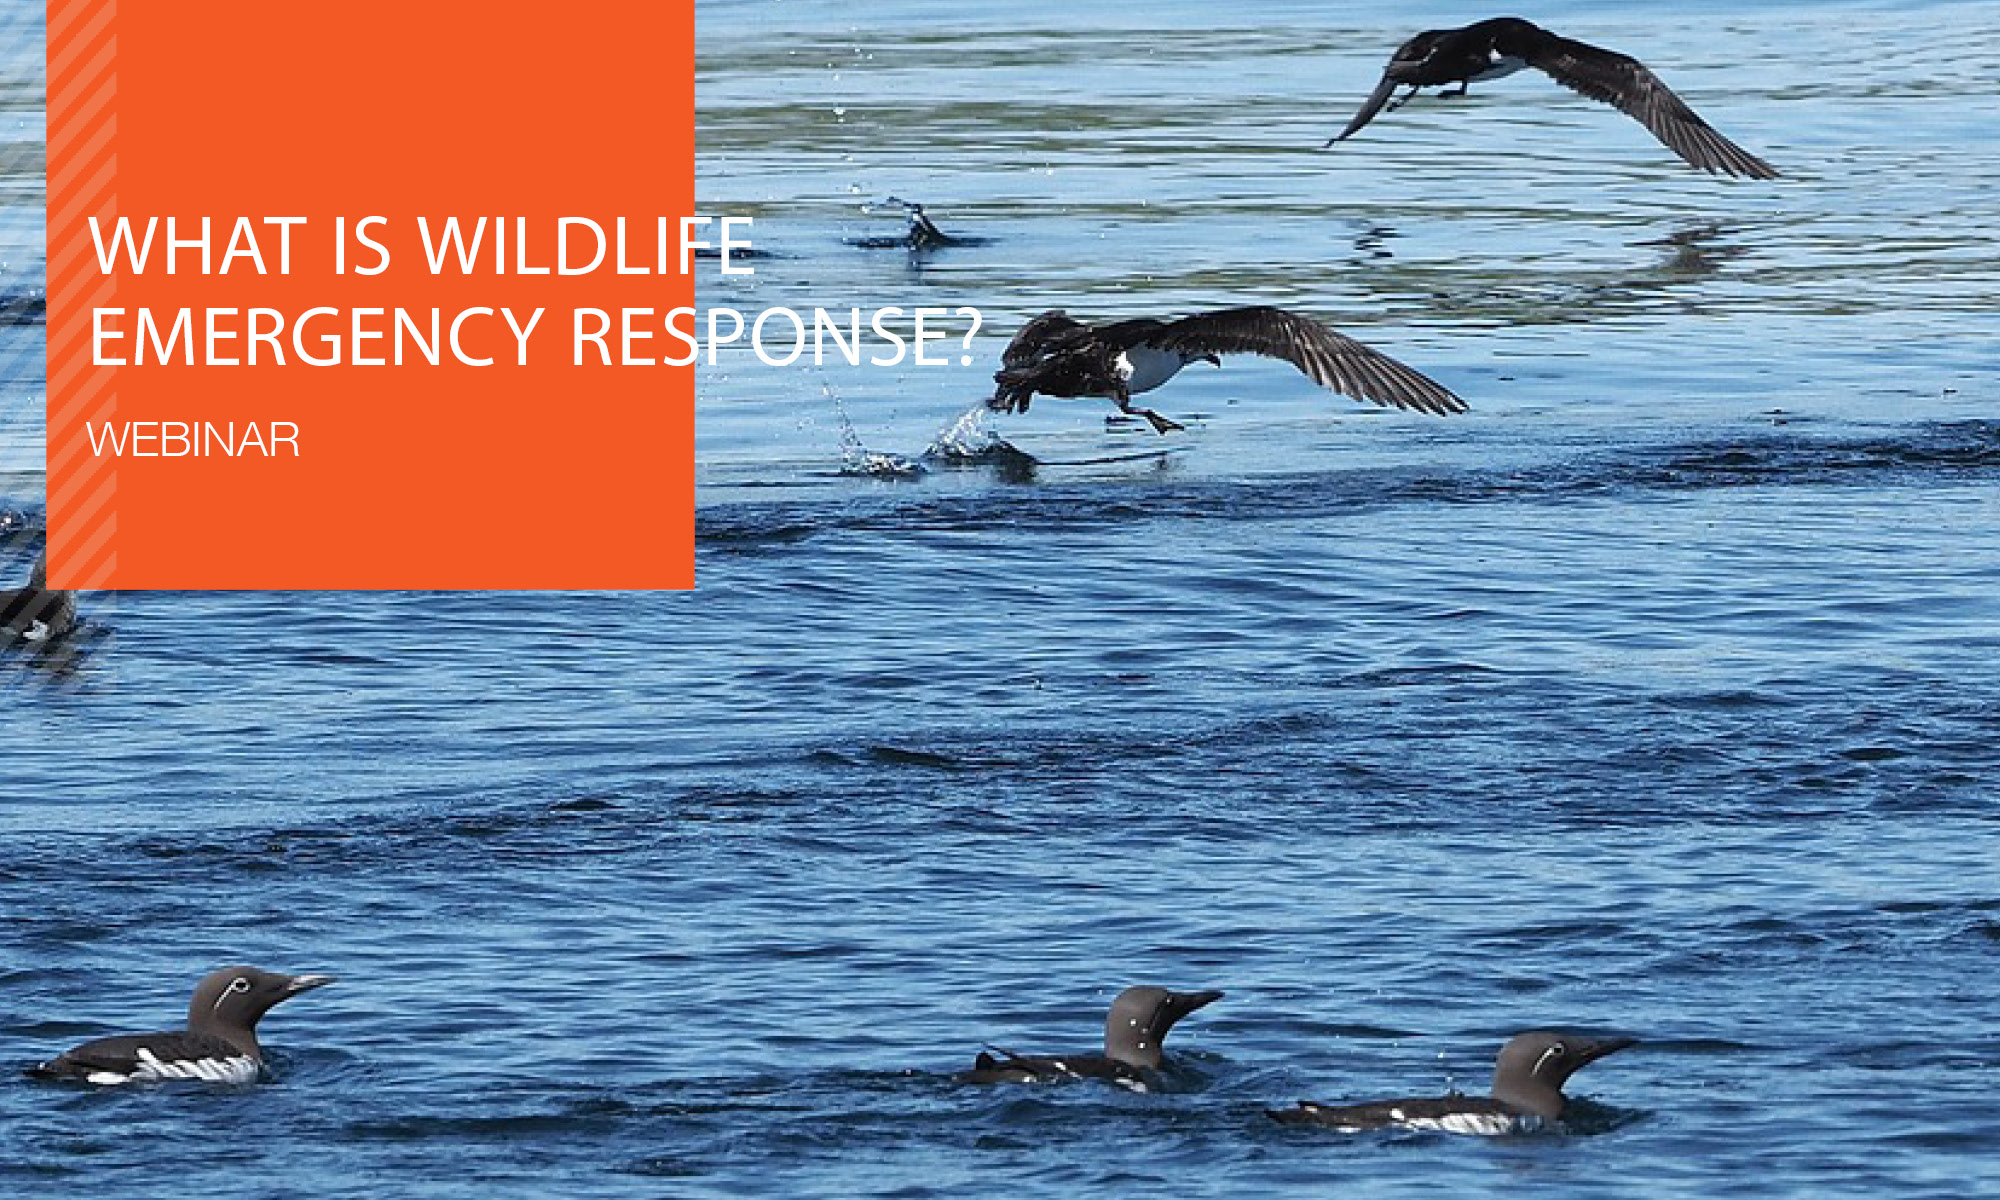 Recorded Webinar: What is Wildlife Emergency Response?